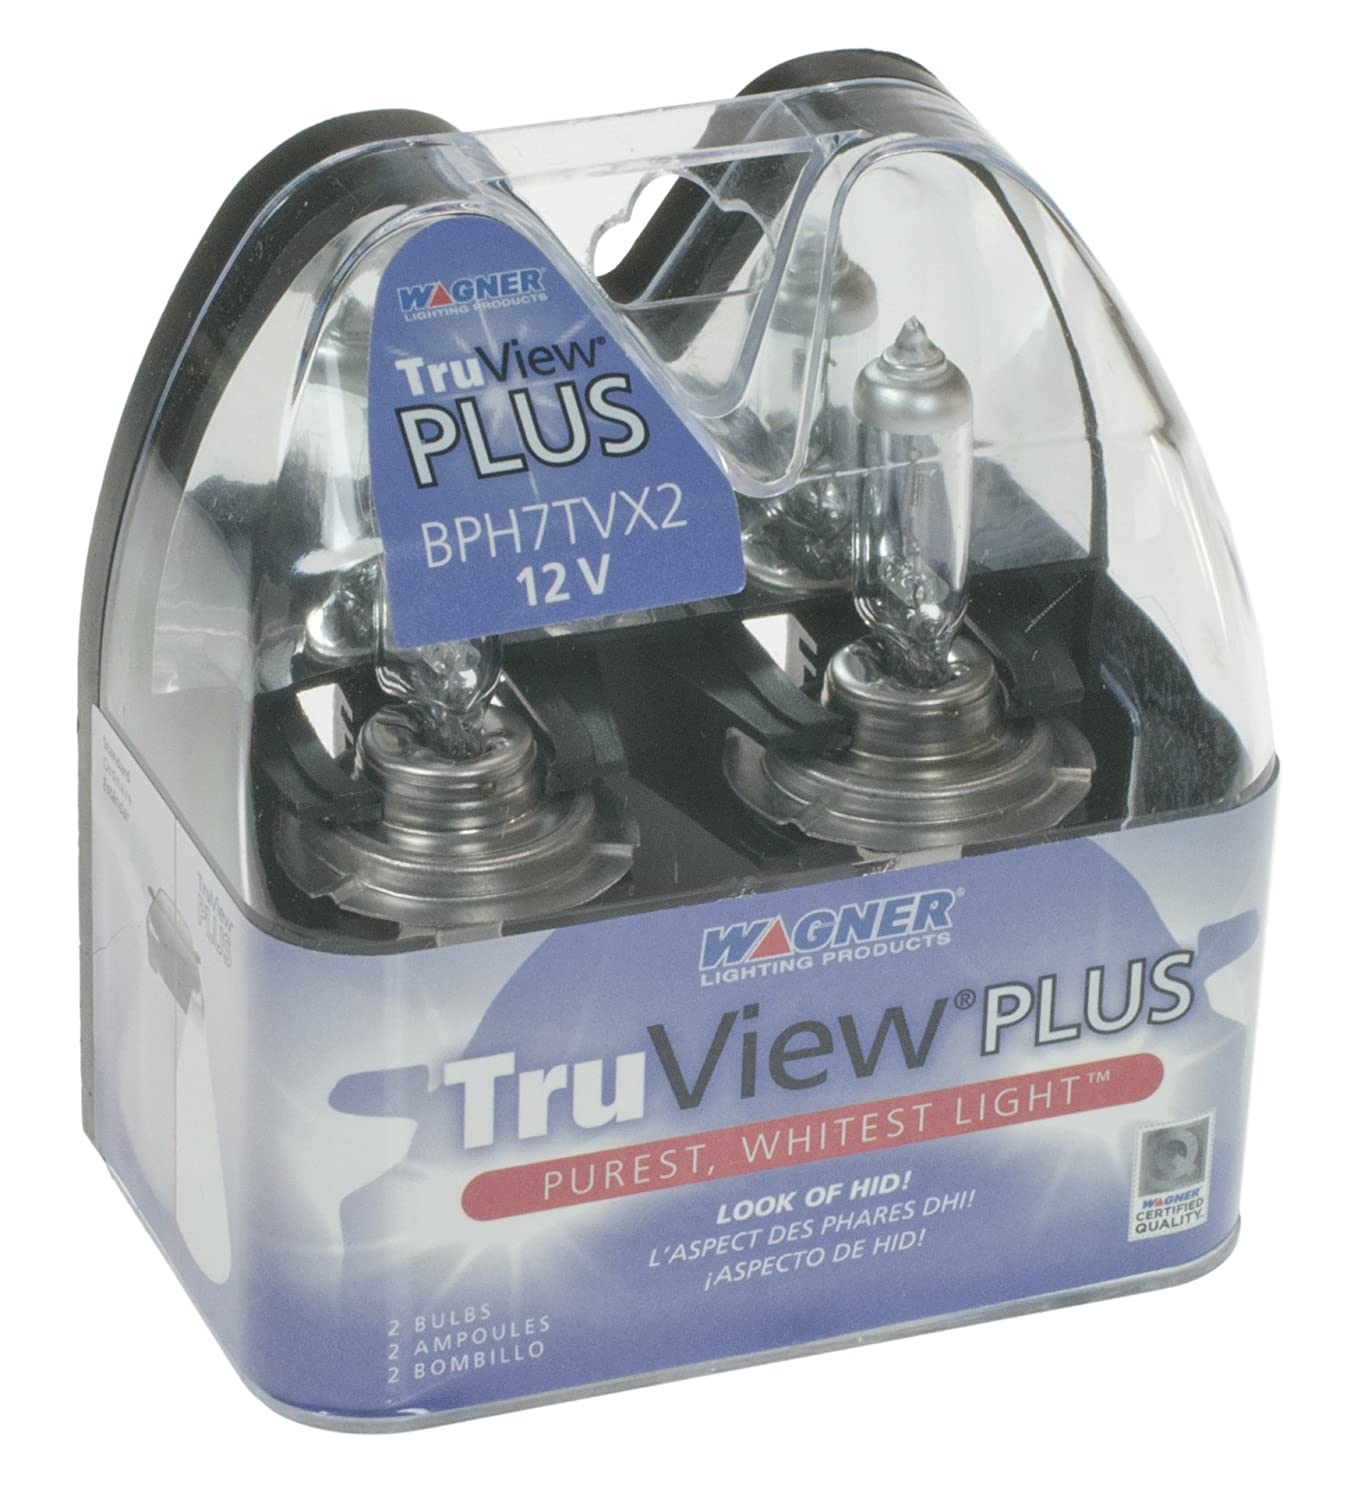 Wagner Truview Bulbs : Wagner h truview replacement bulb pack of business